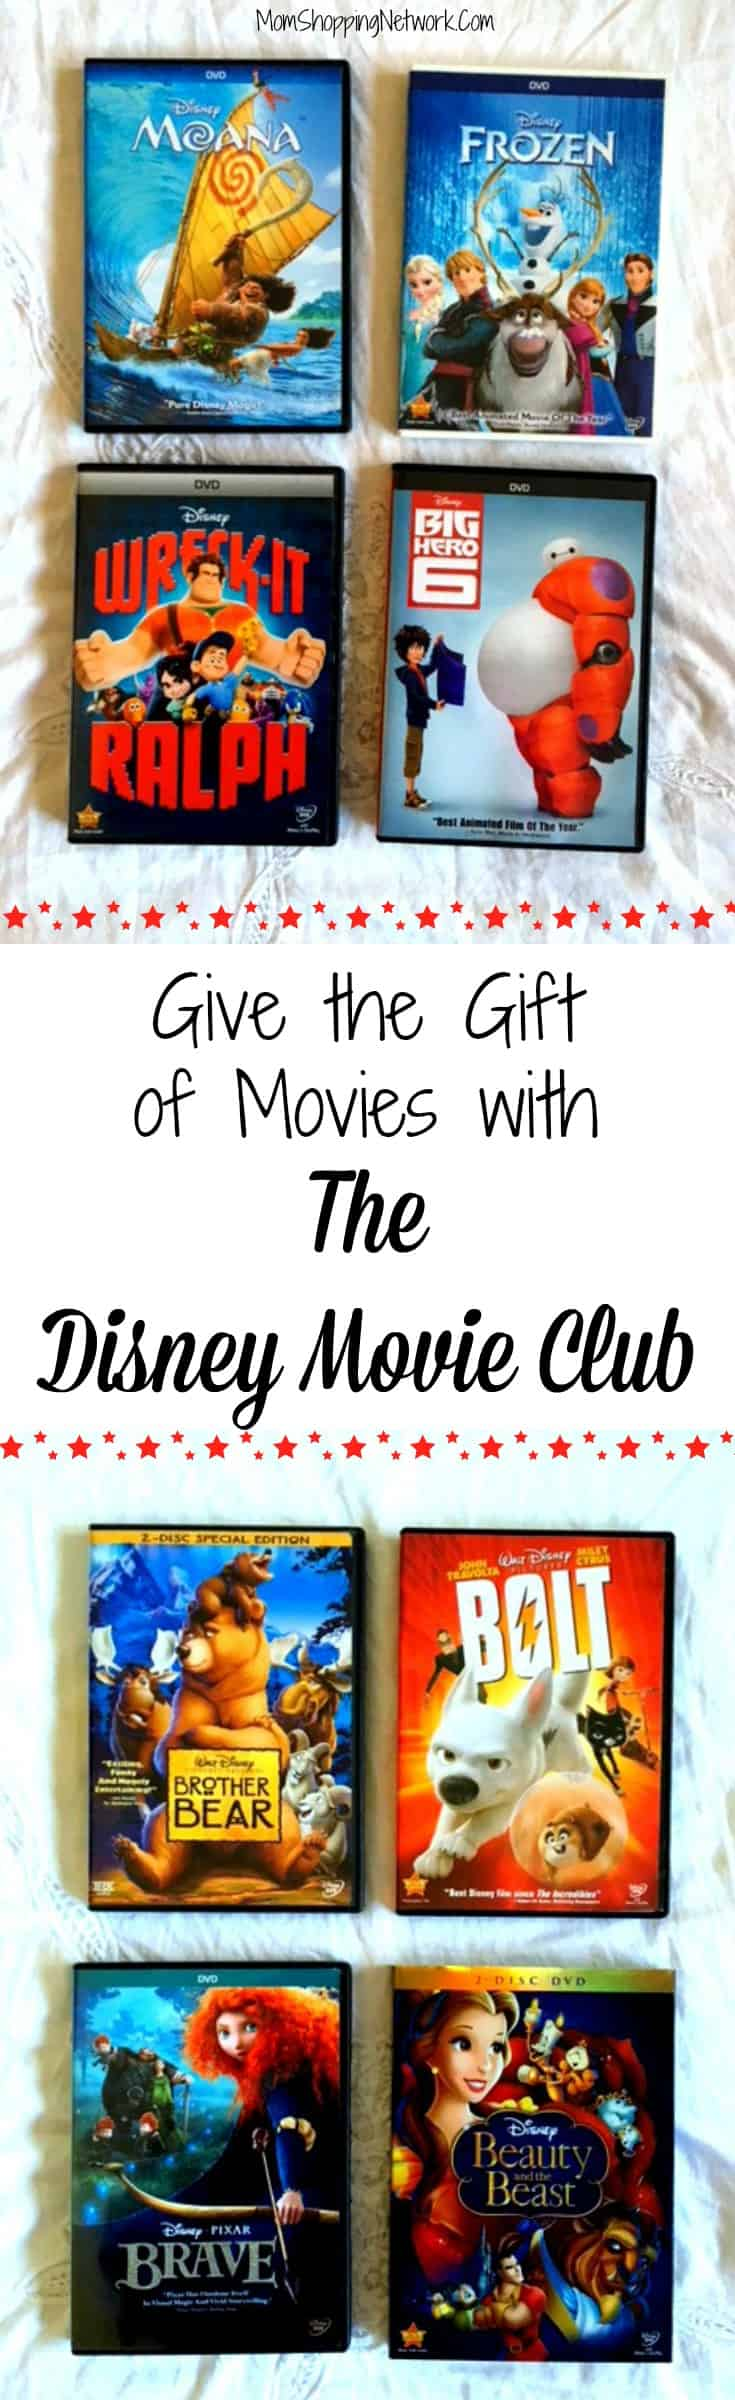 The Disney Movie Club is the perfect gift! Disney|Disney Movie|Disney Movies|Disney Movie Club|Disney Movie List|Gifts|Movies|Movies to Watch|Movie Gift|Movie Gift Ideas|Best Gift Ideas